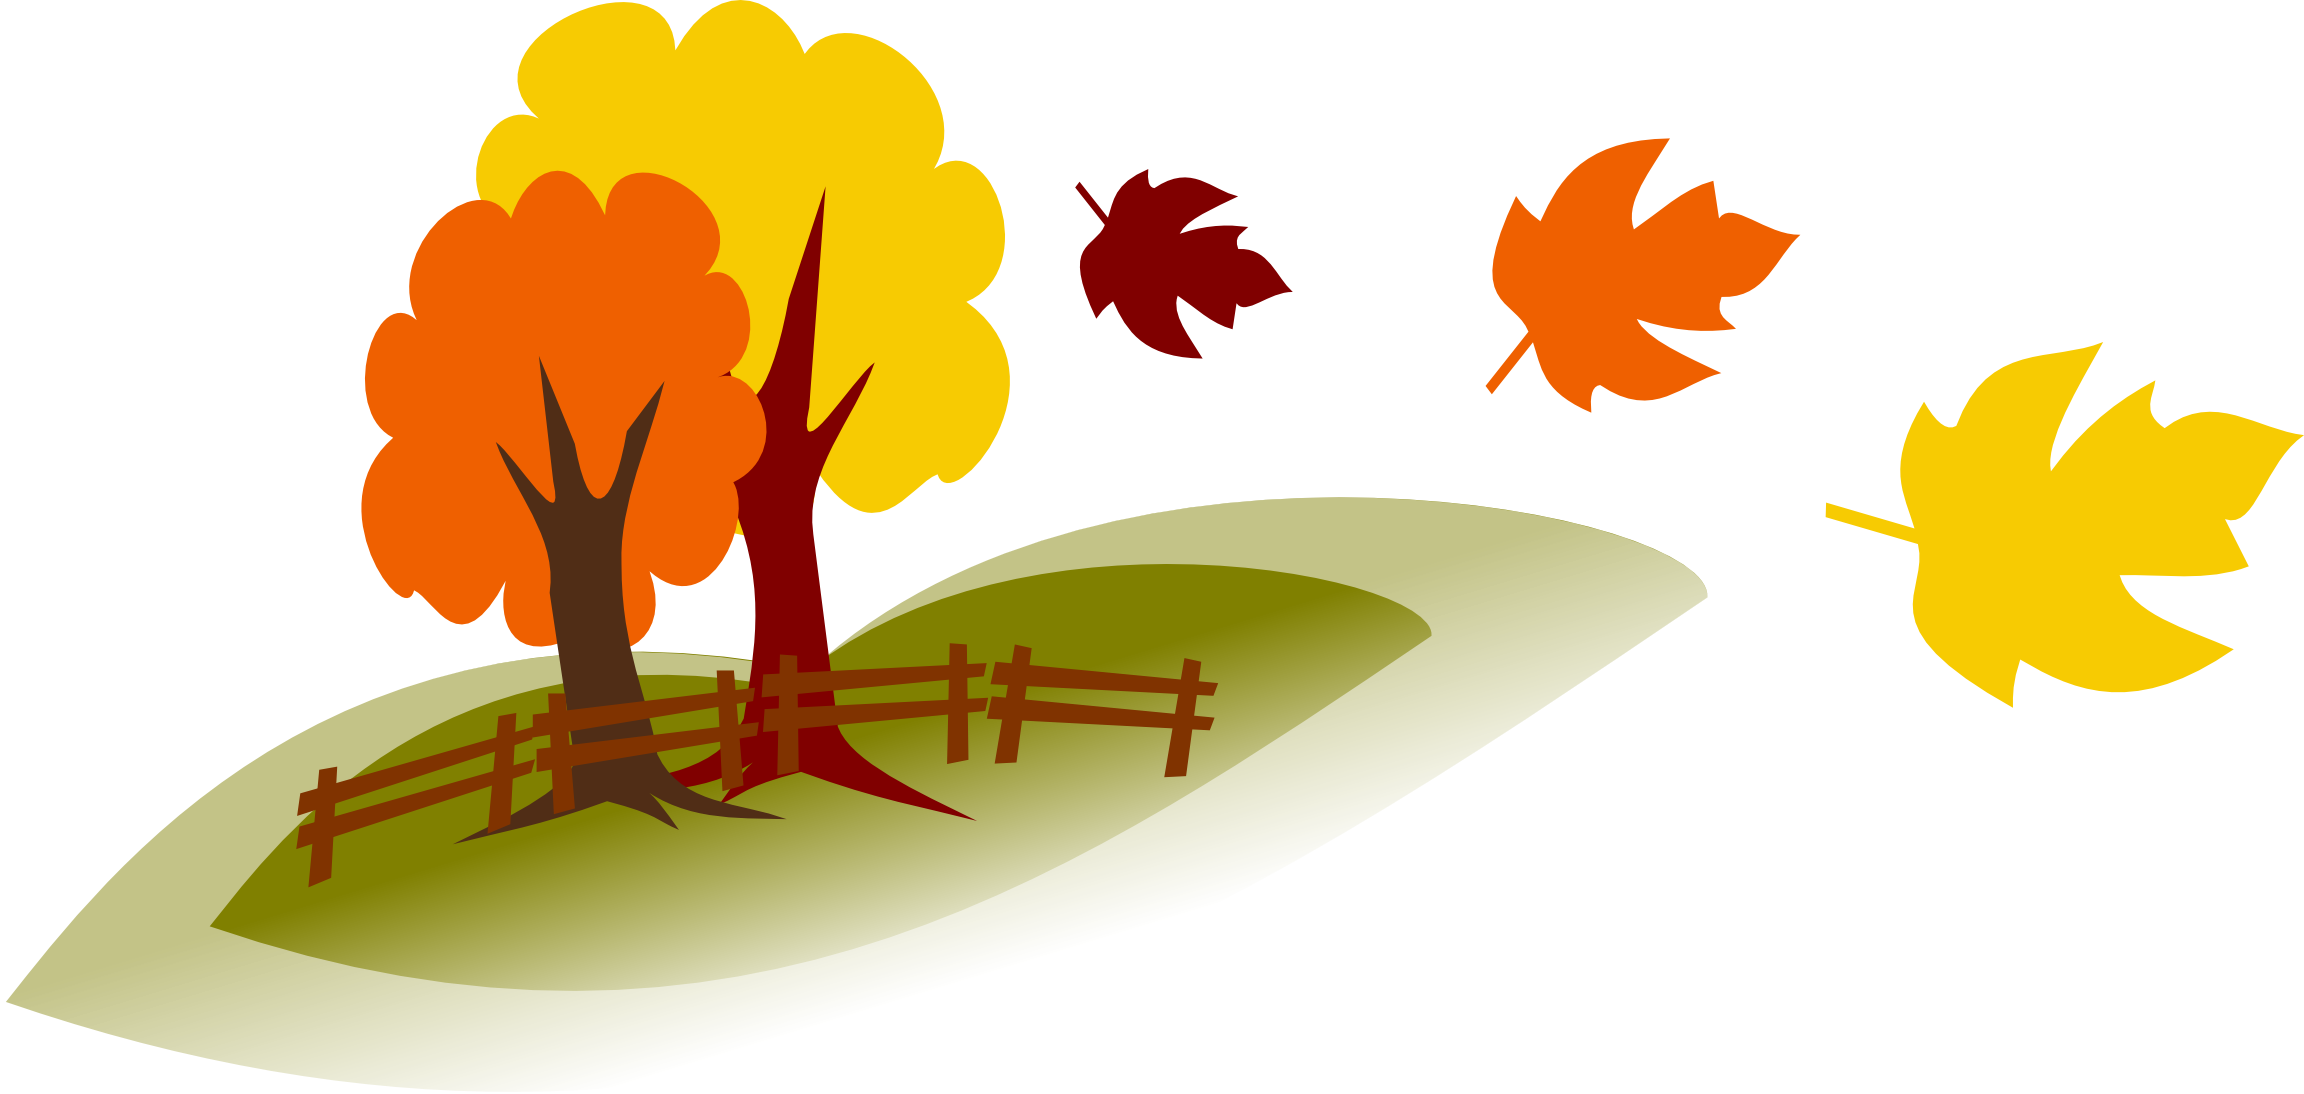 Fall Images Png - File:Design-fall.png - Wikimedia Commons